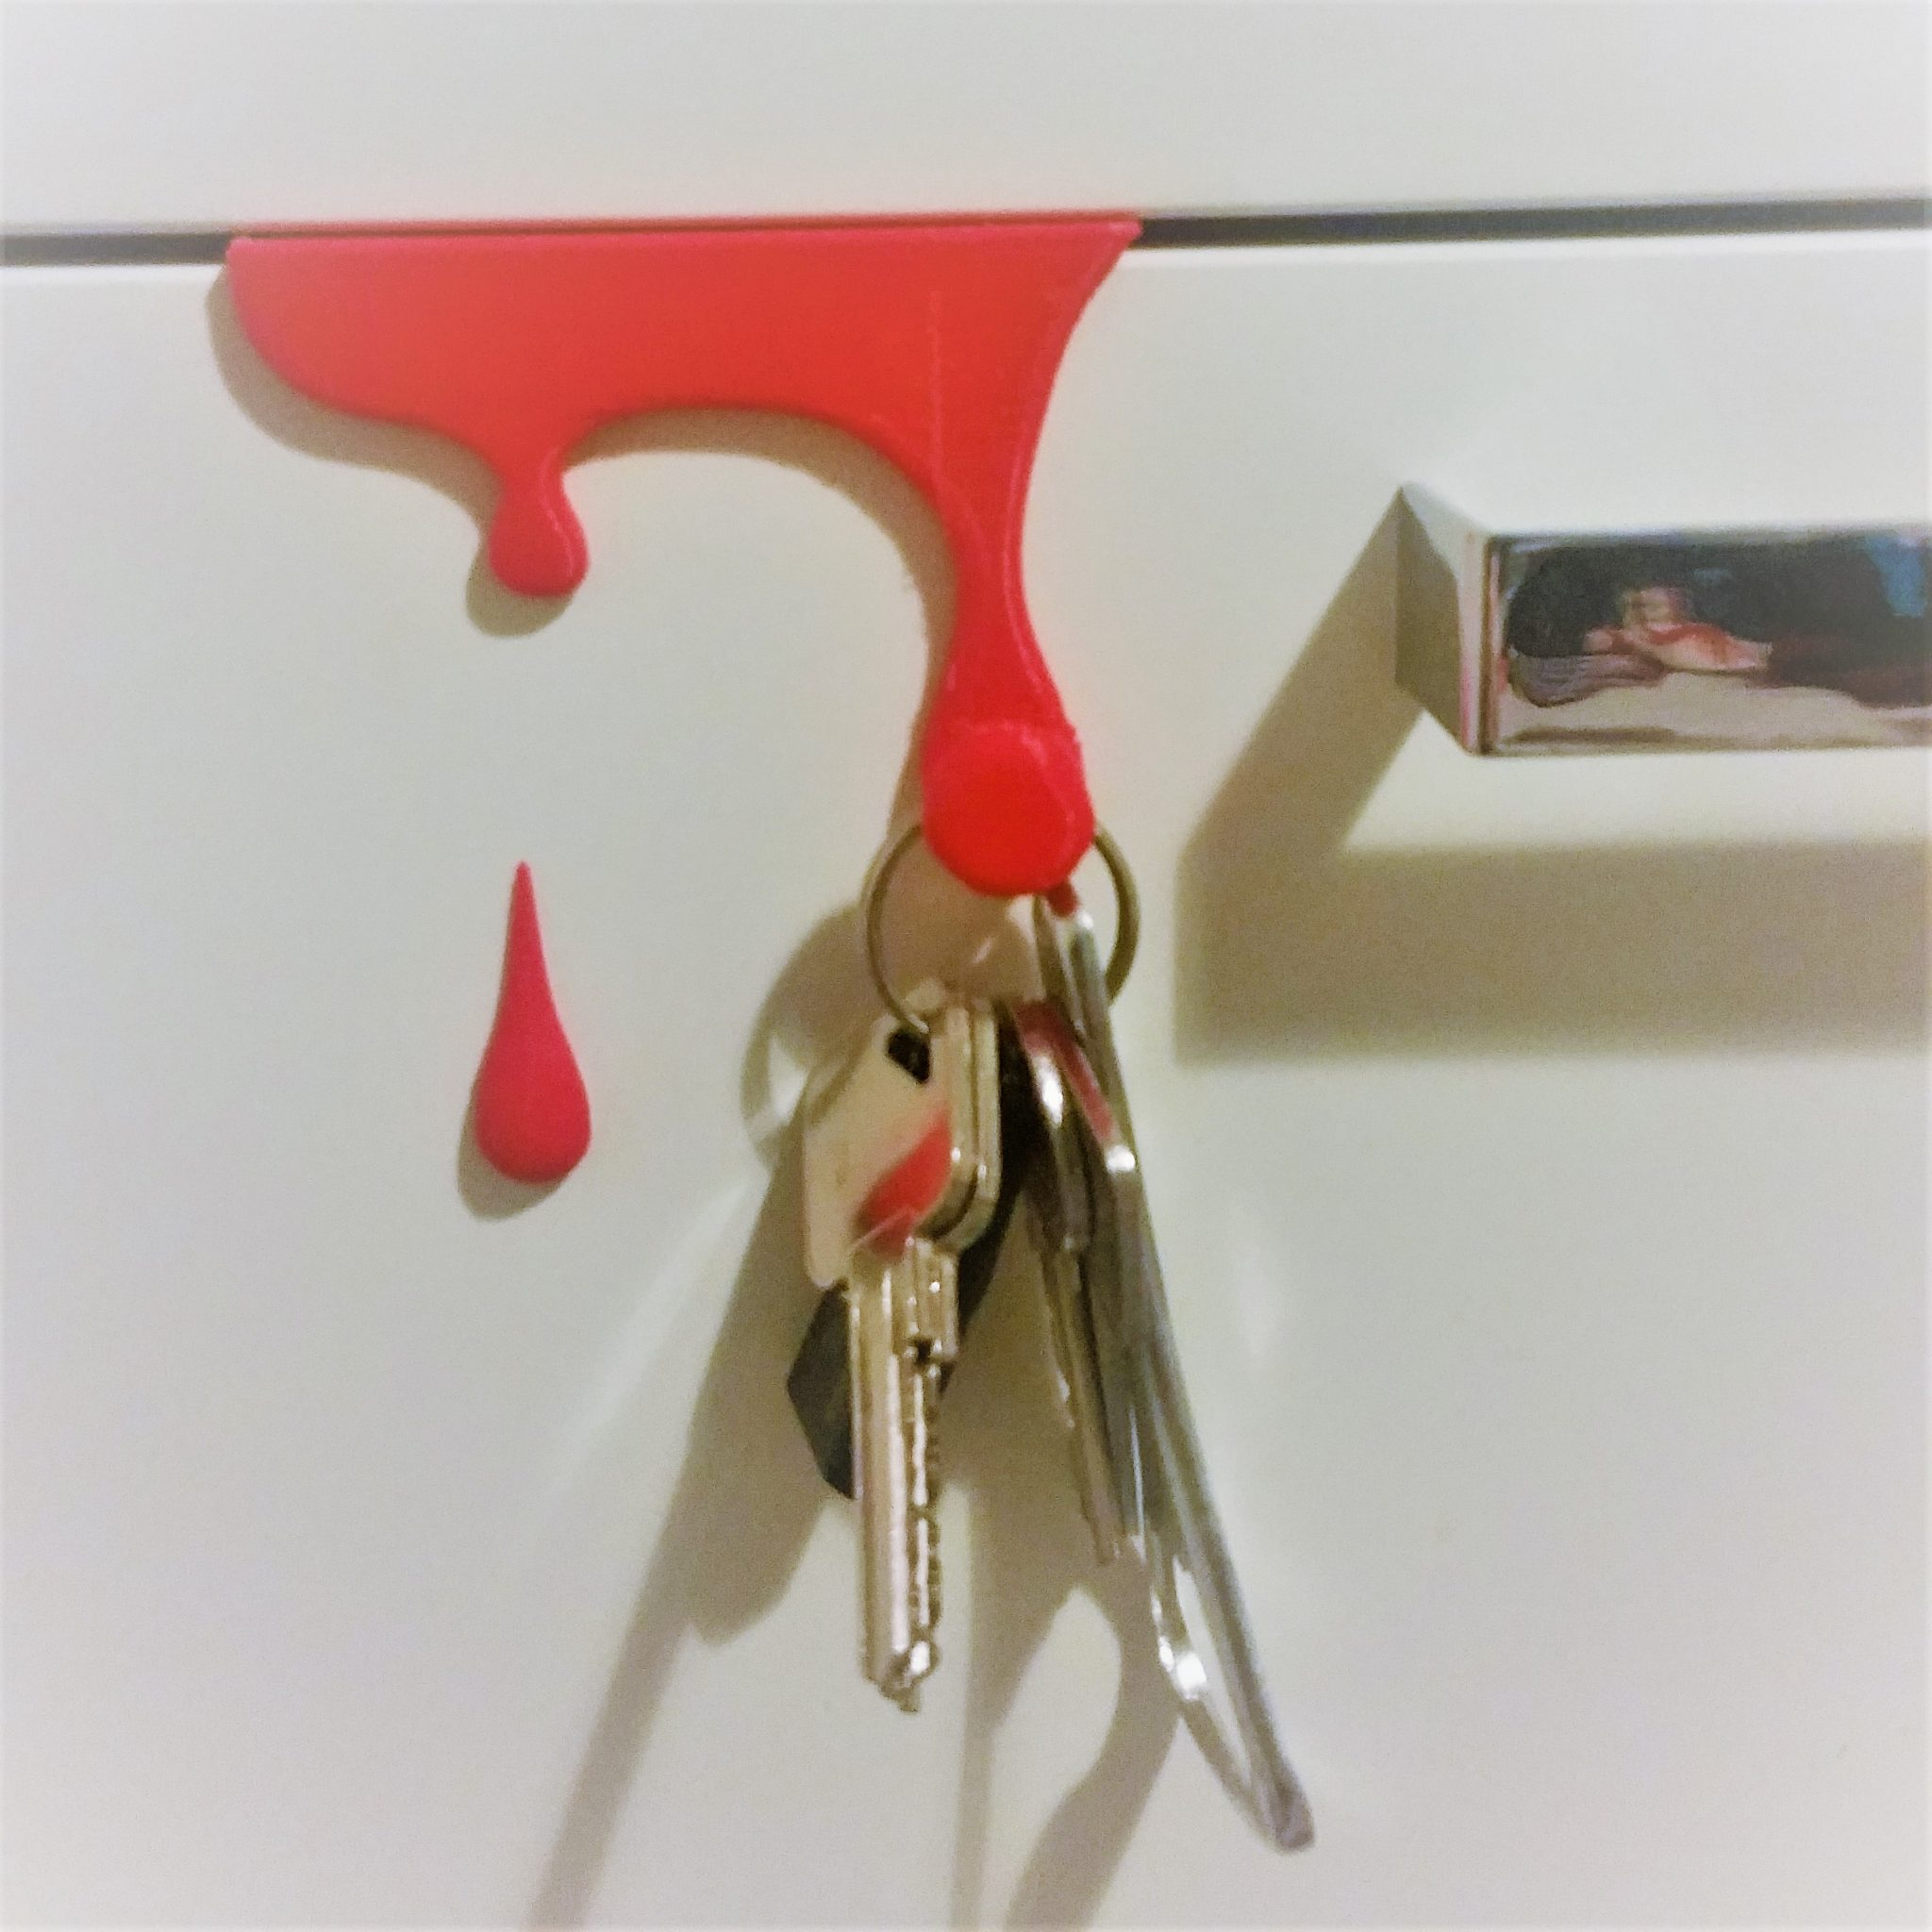 Drip Hook with keys